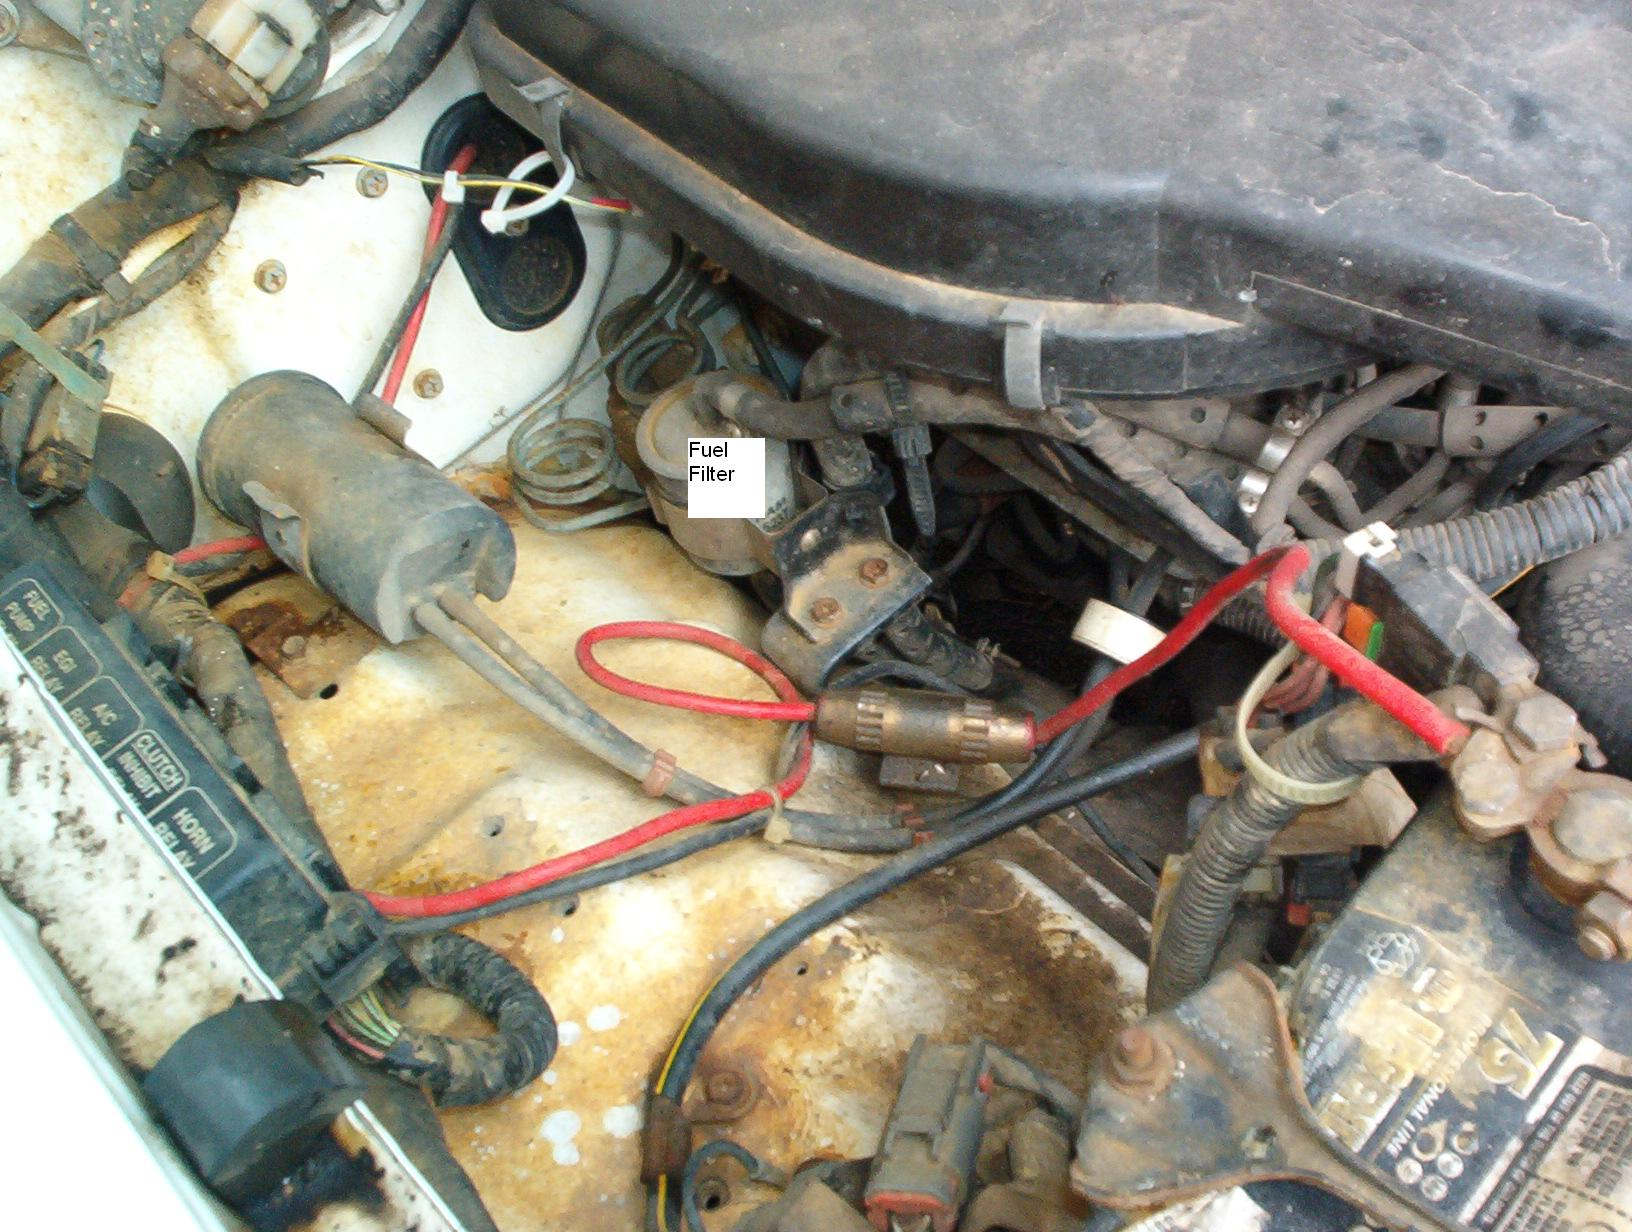 1993 nissan pickup fuel filter location year of clean water 93 Nissan Truck Fuel Filter 93 nissan truck fuel filter diagrams